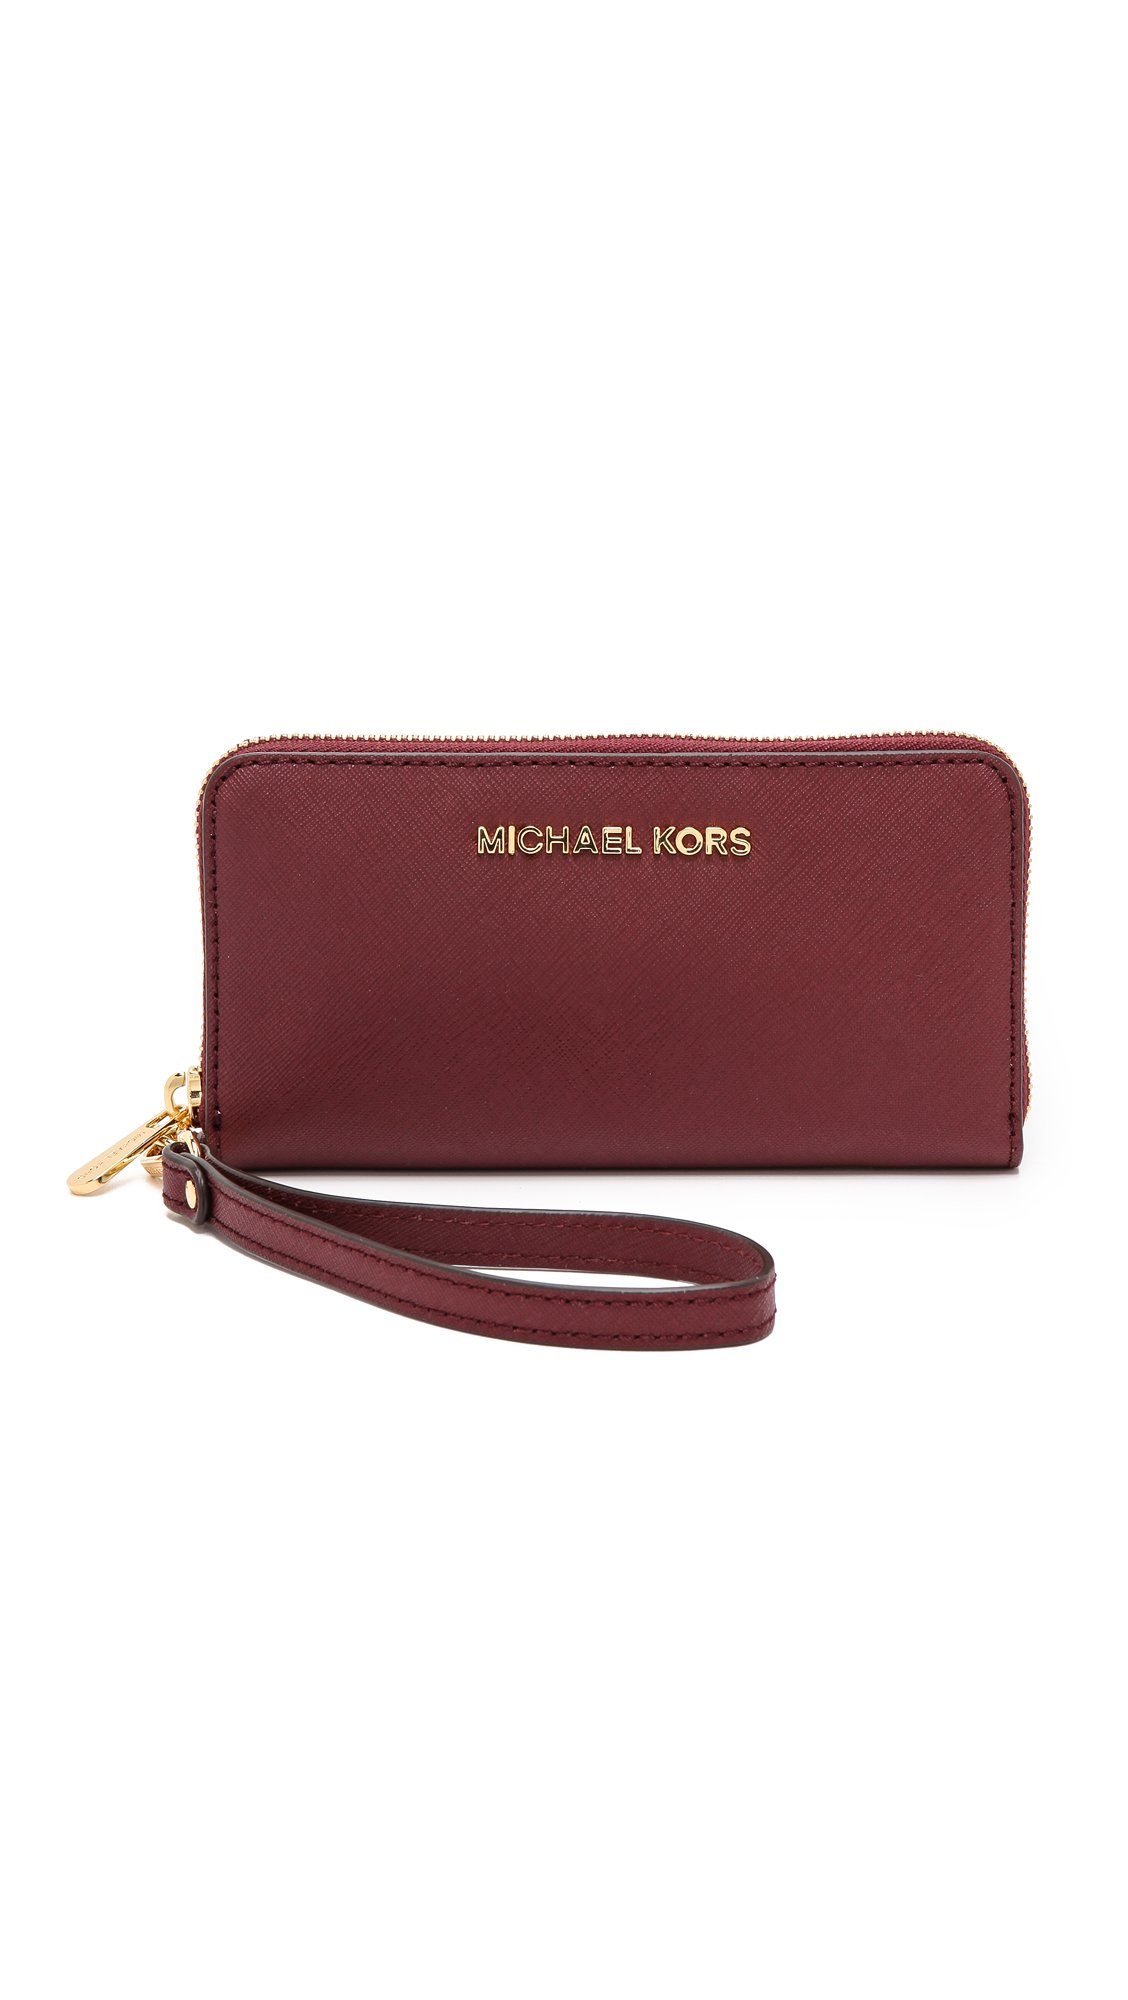 MICHAEL Michael Kors Women's Large Coin / Phone Case, Claret, One Size